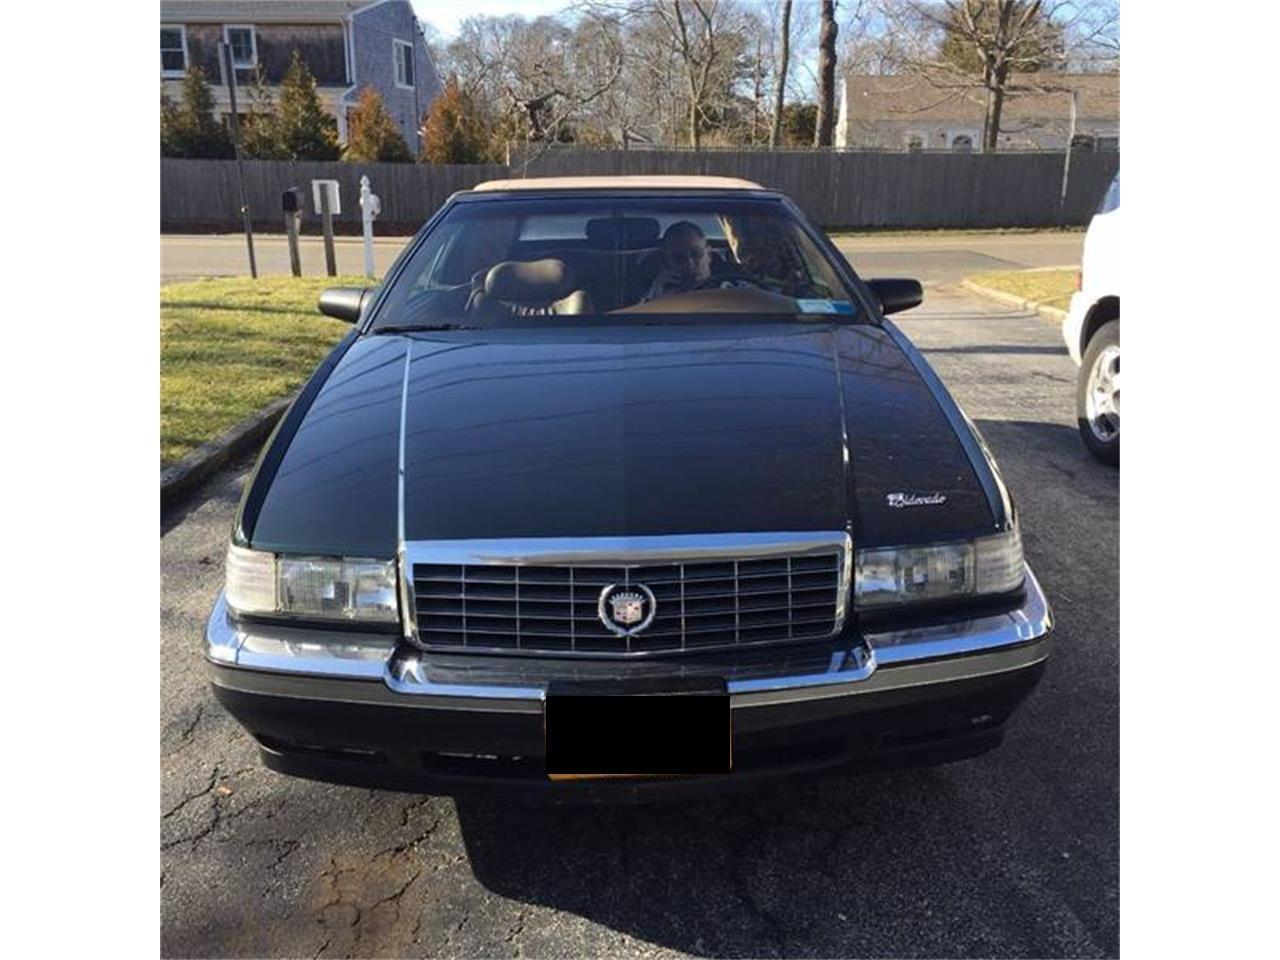 1992 cadillac eldorado for sale classiccars com cc 942673 1992 cadillac eldorado for sale